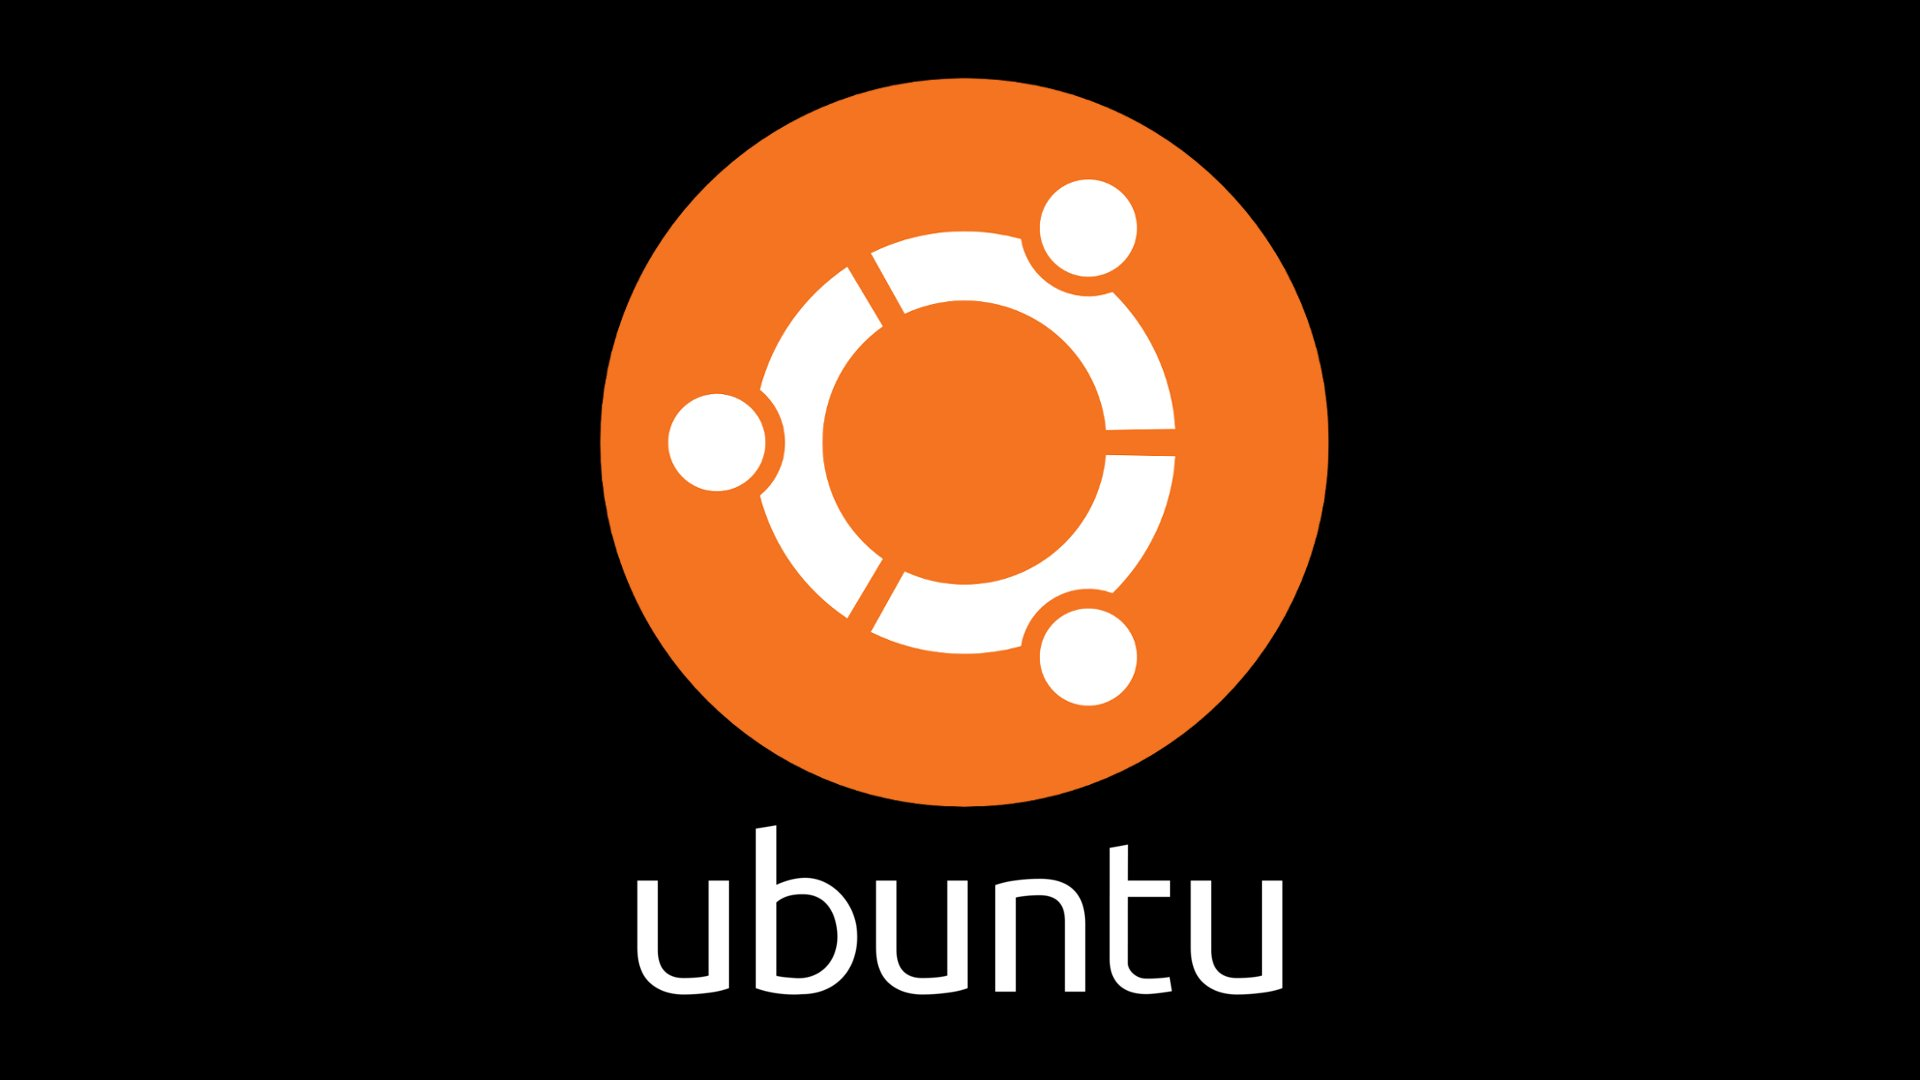 Ubuntu latest version free download